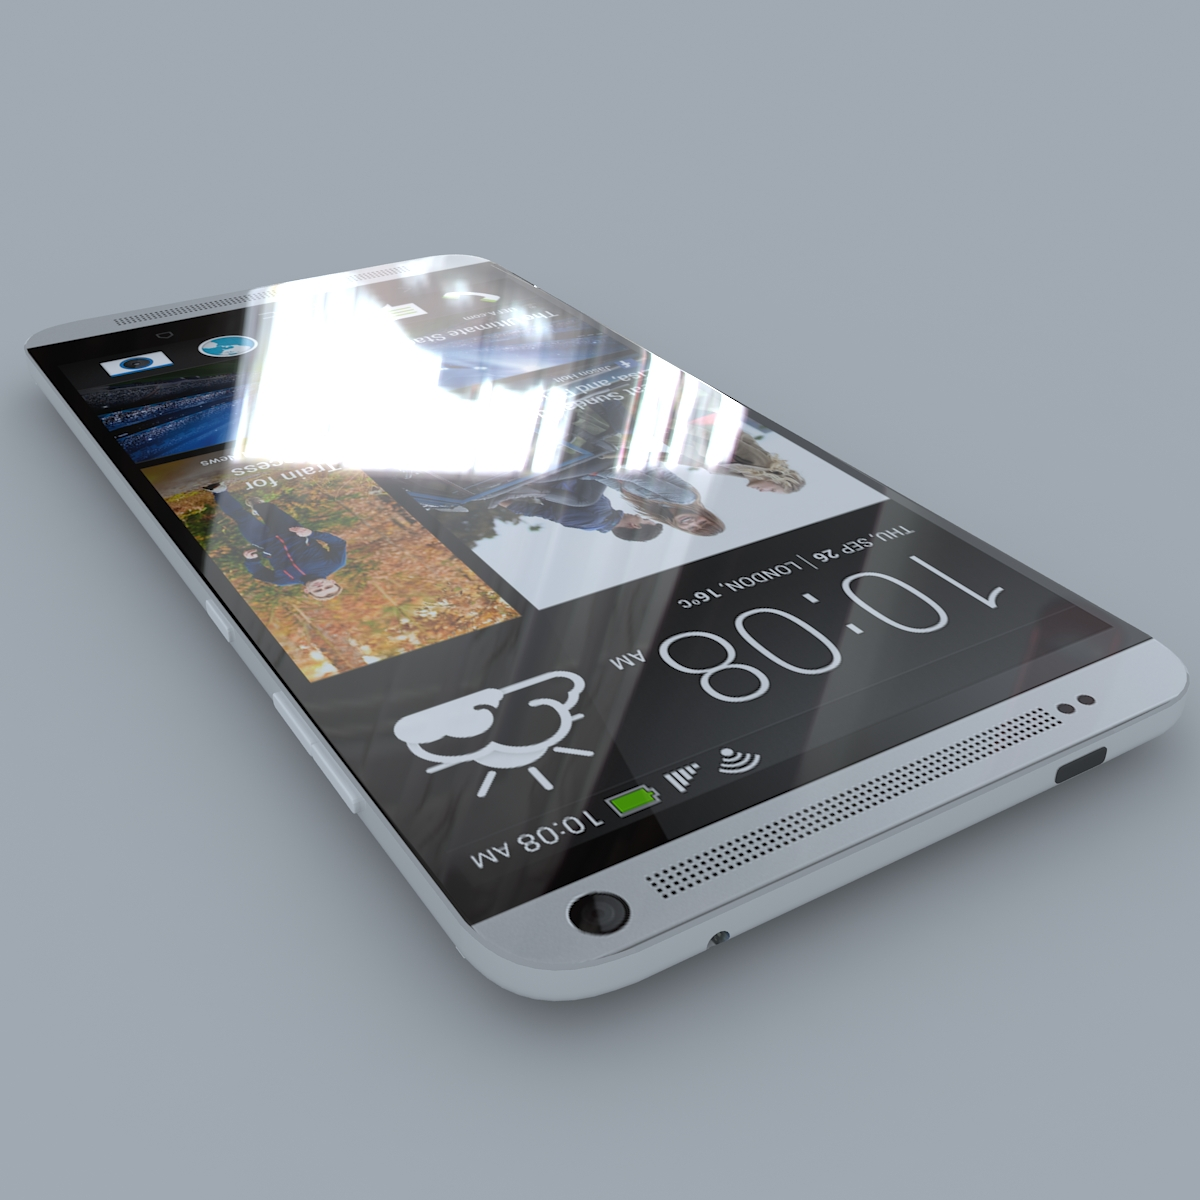 htc one max 3d model max c4d ma mb obj 158166